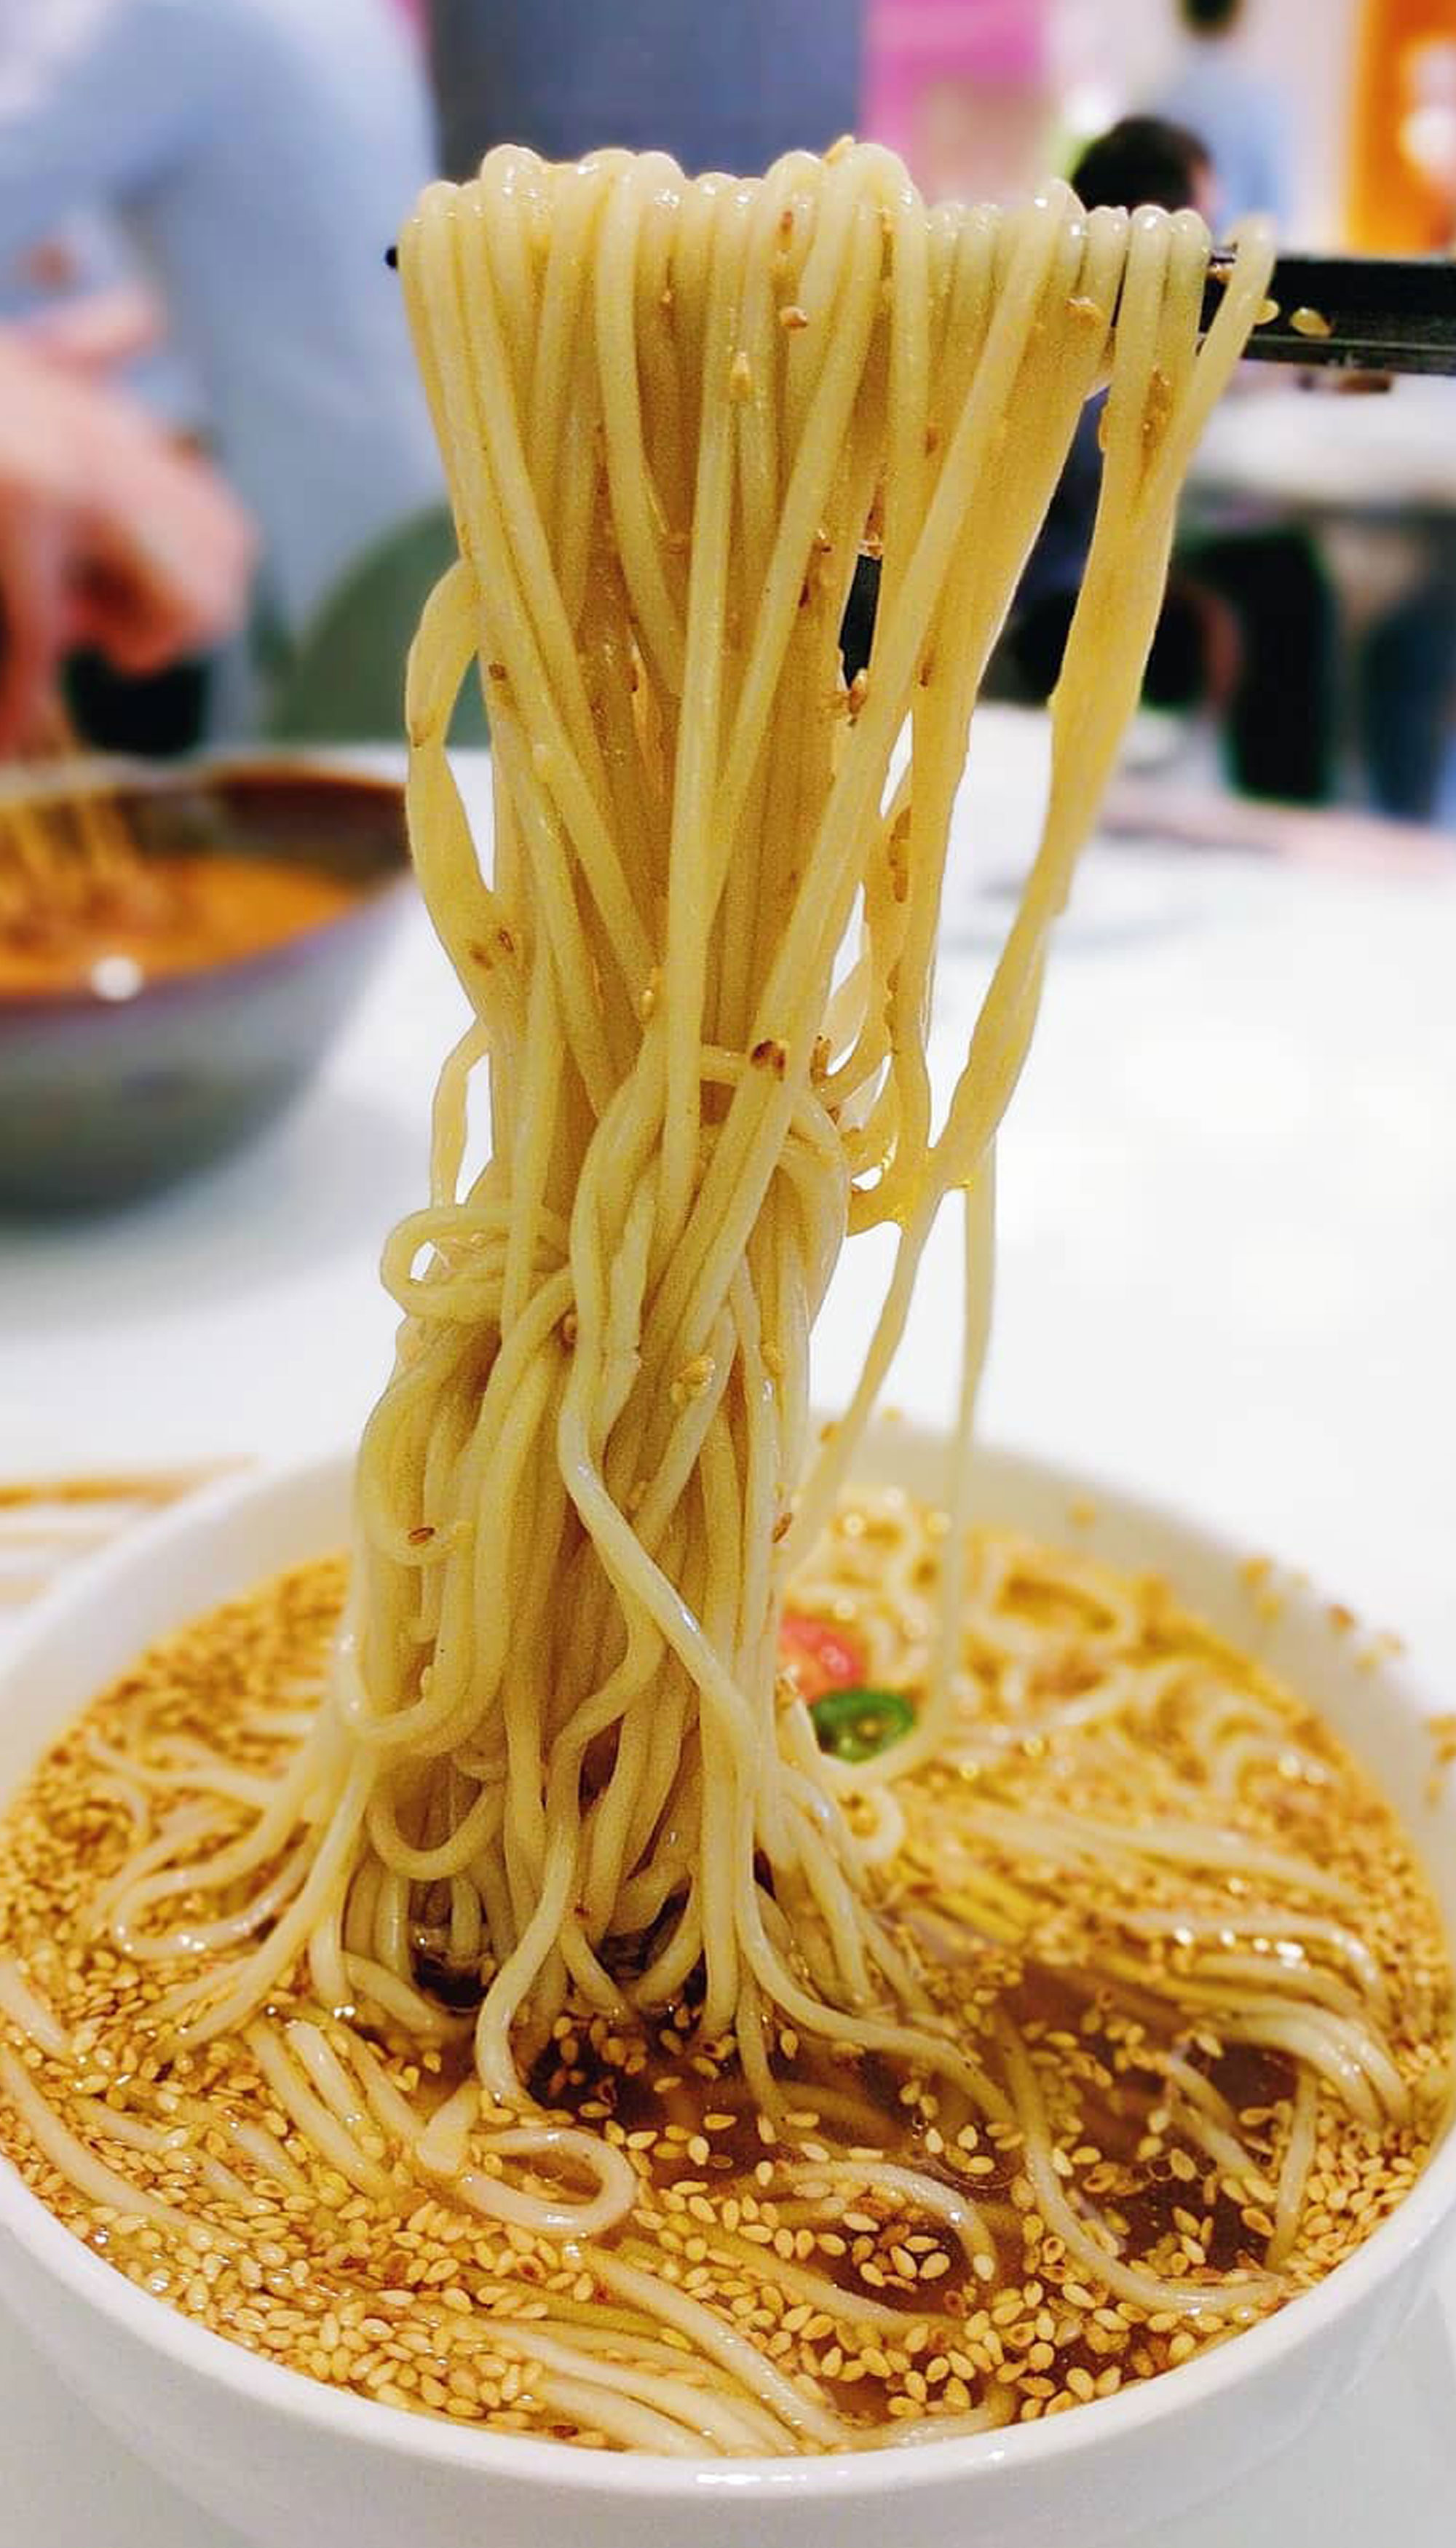 Photo of a noodle soup dish with noodles hanging from chopsticks.